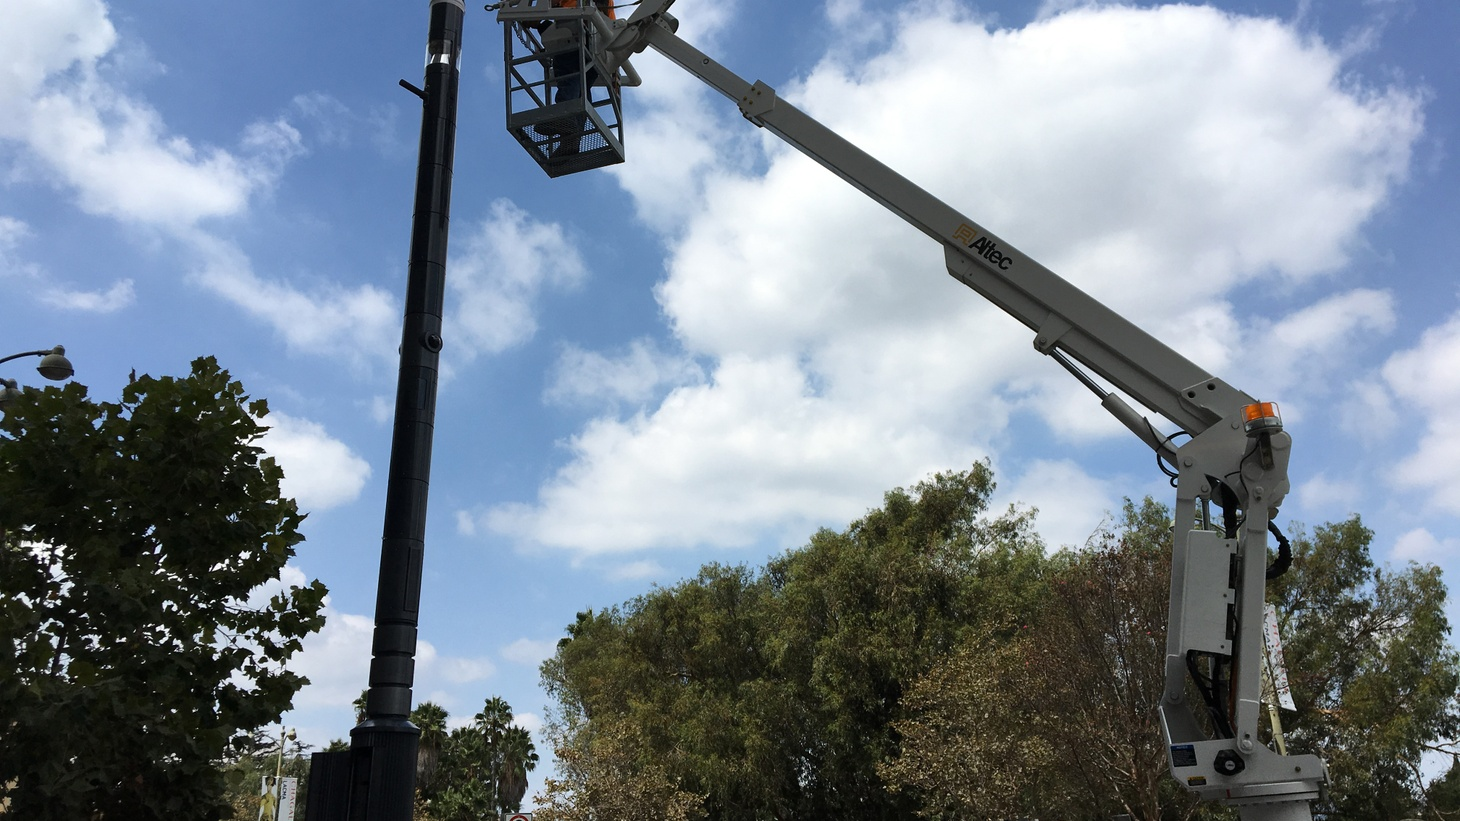 """Workers install a """"smart node"""" on Wilshire Boulevard. It's part of a pilot project led by the City of LA's Bureau of Street Services."""